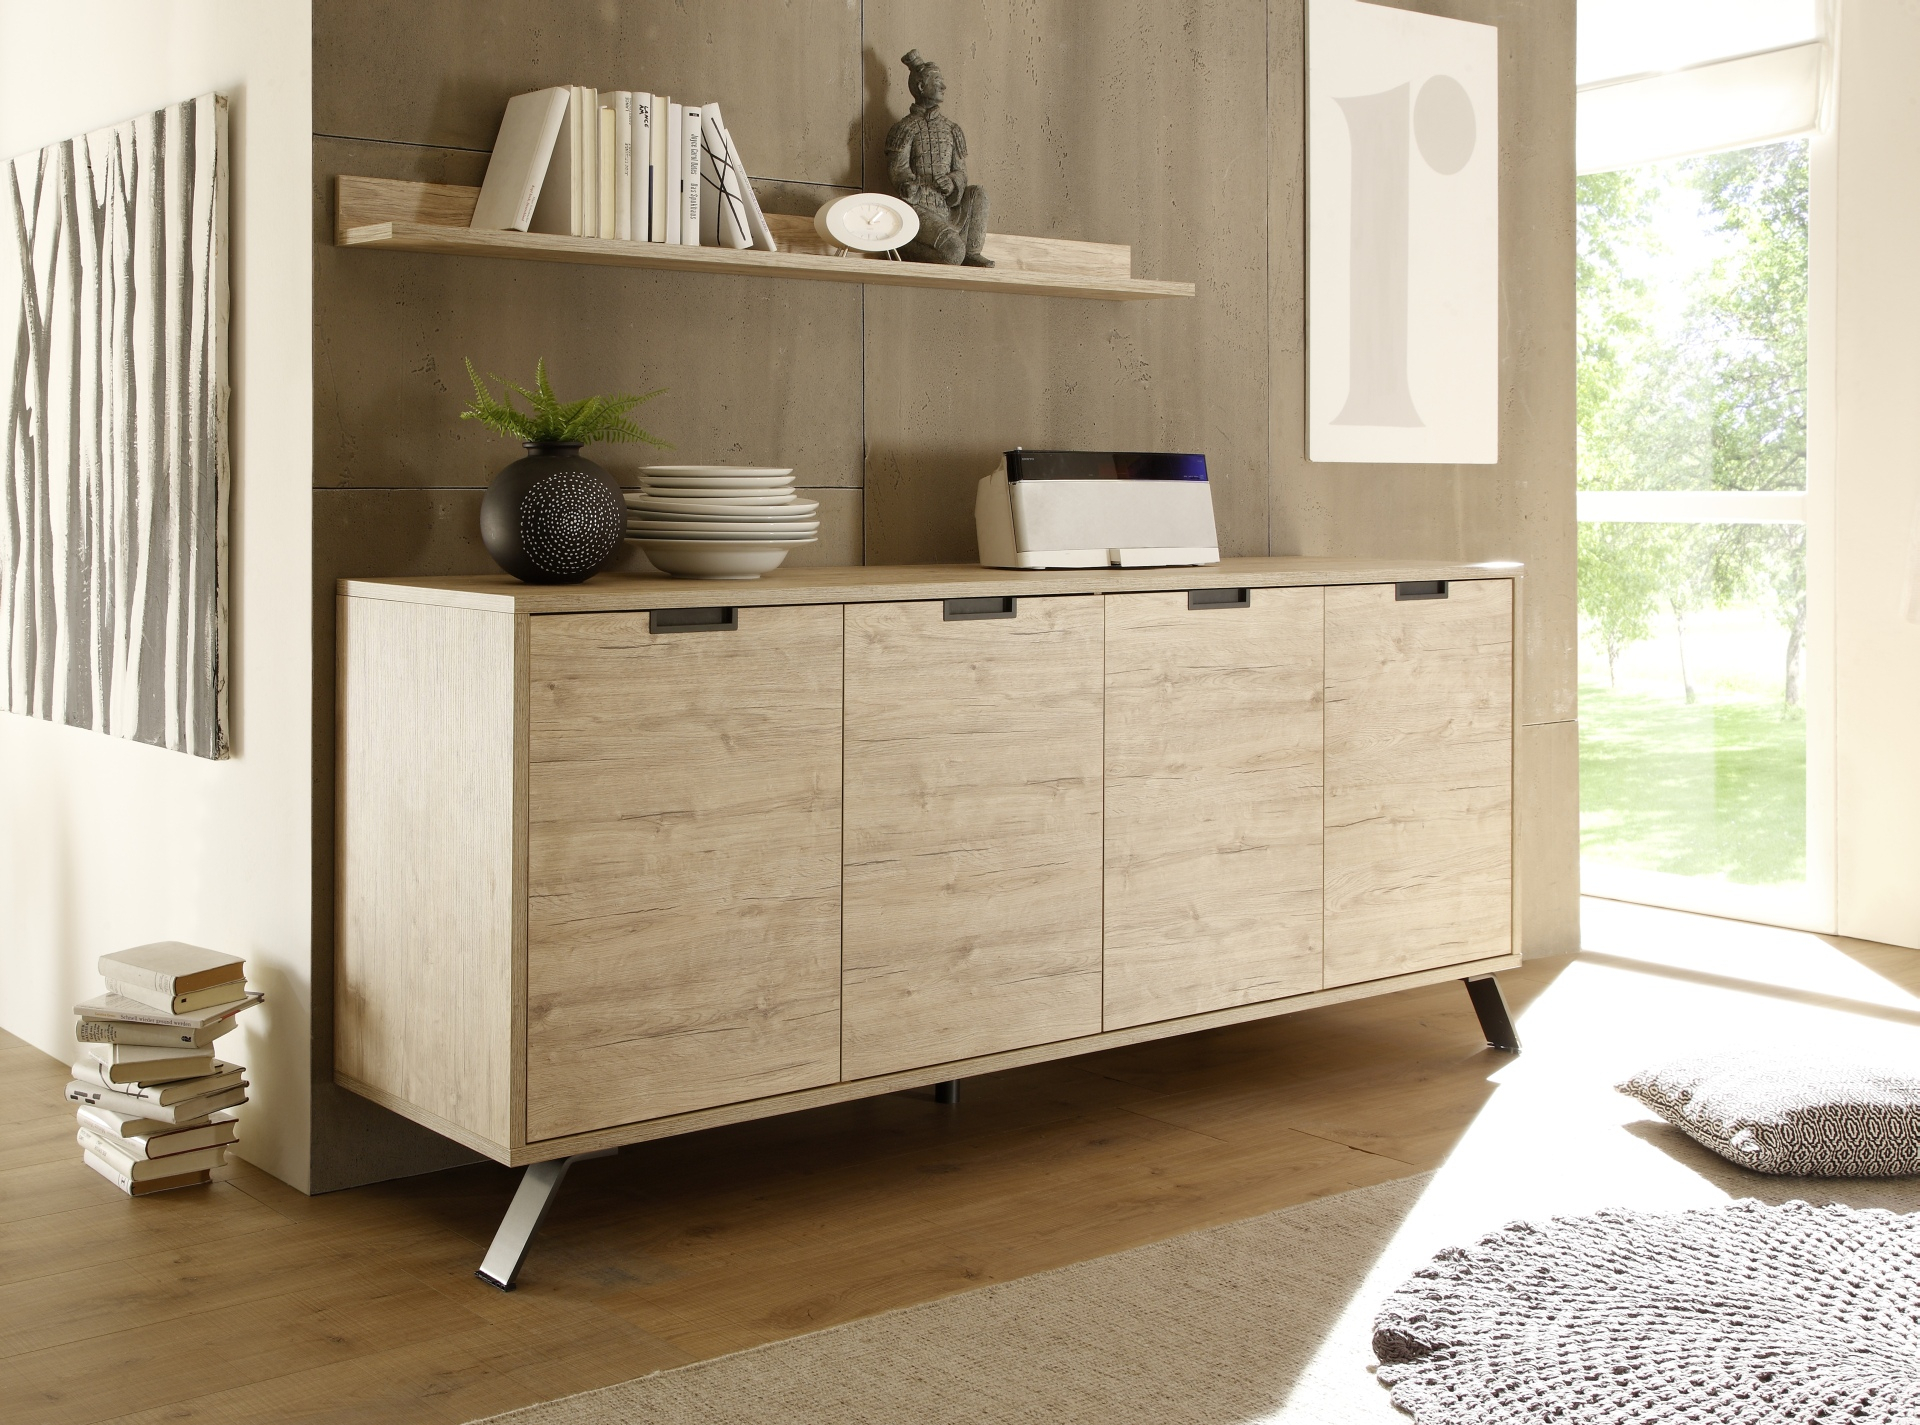 Contemporary Light Oak 4 Door Dining Buffet With Soft Closing Doors intended for Modern Natural Oak Dining Buffets (Image 13 of 30)